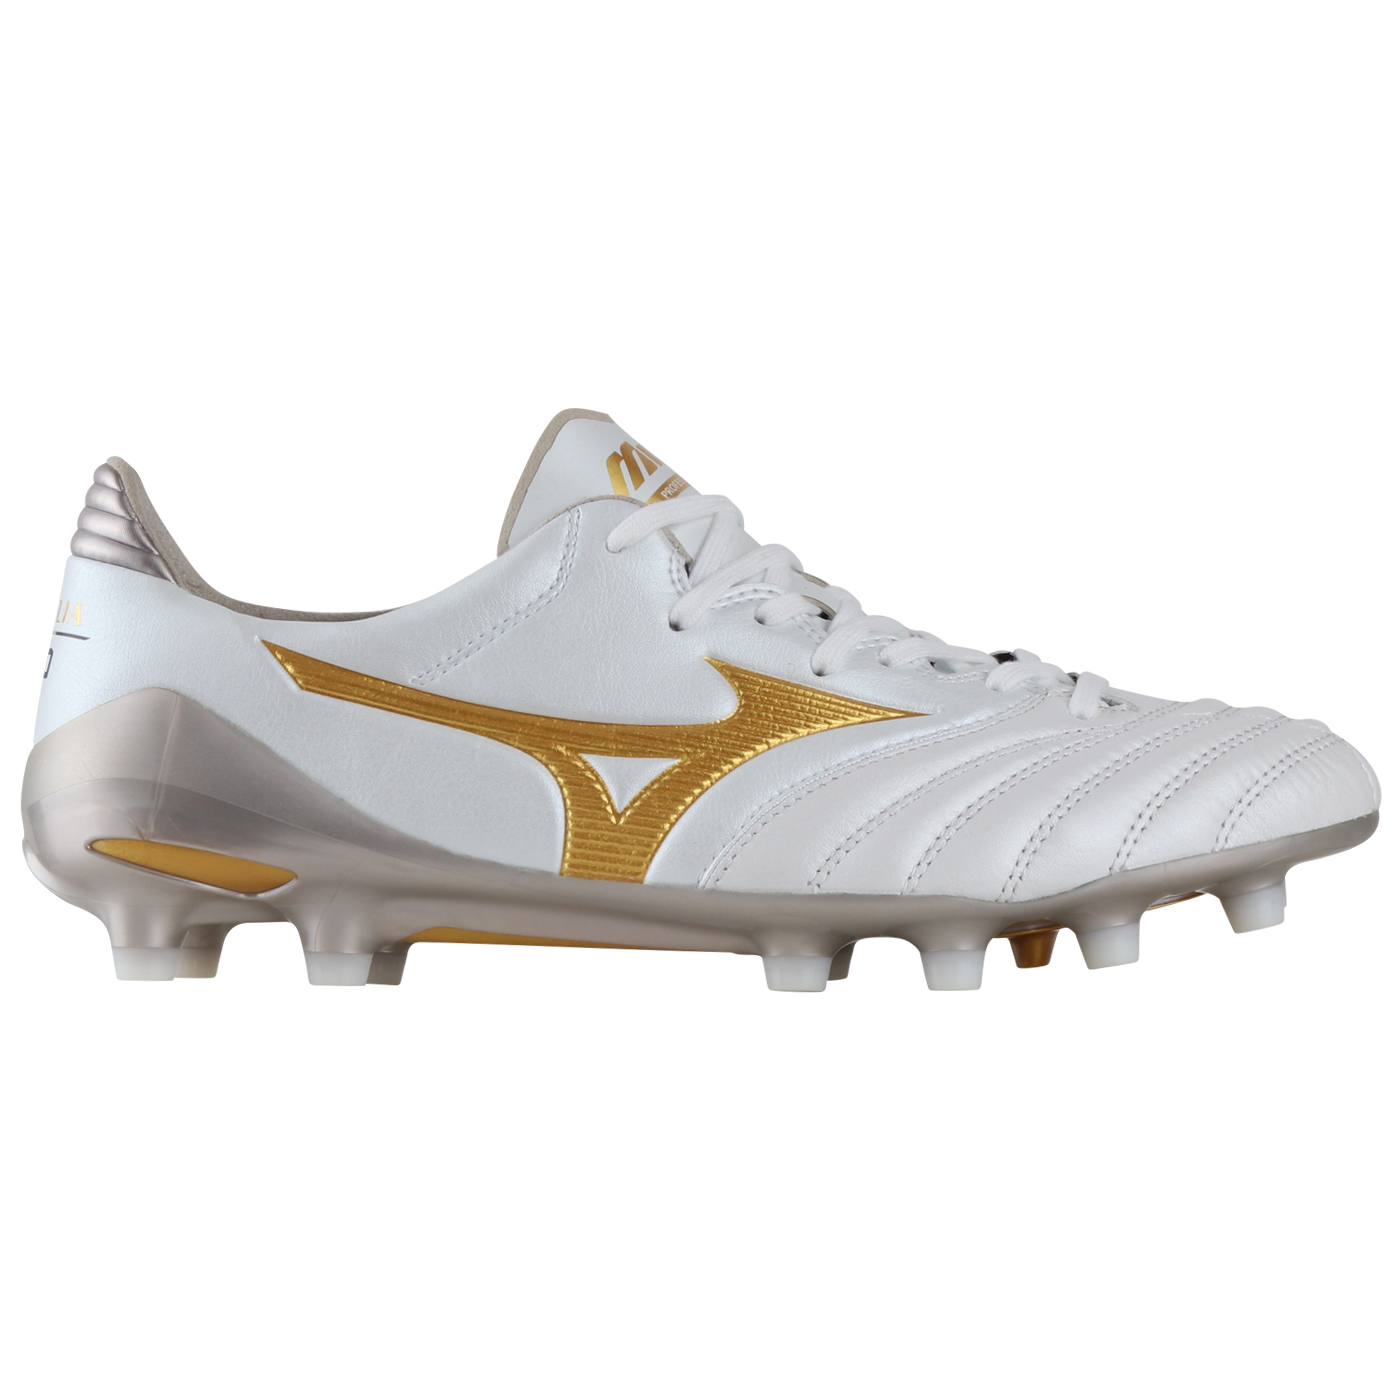 MORELIA NEO II MD - WHITE/GOLD/